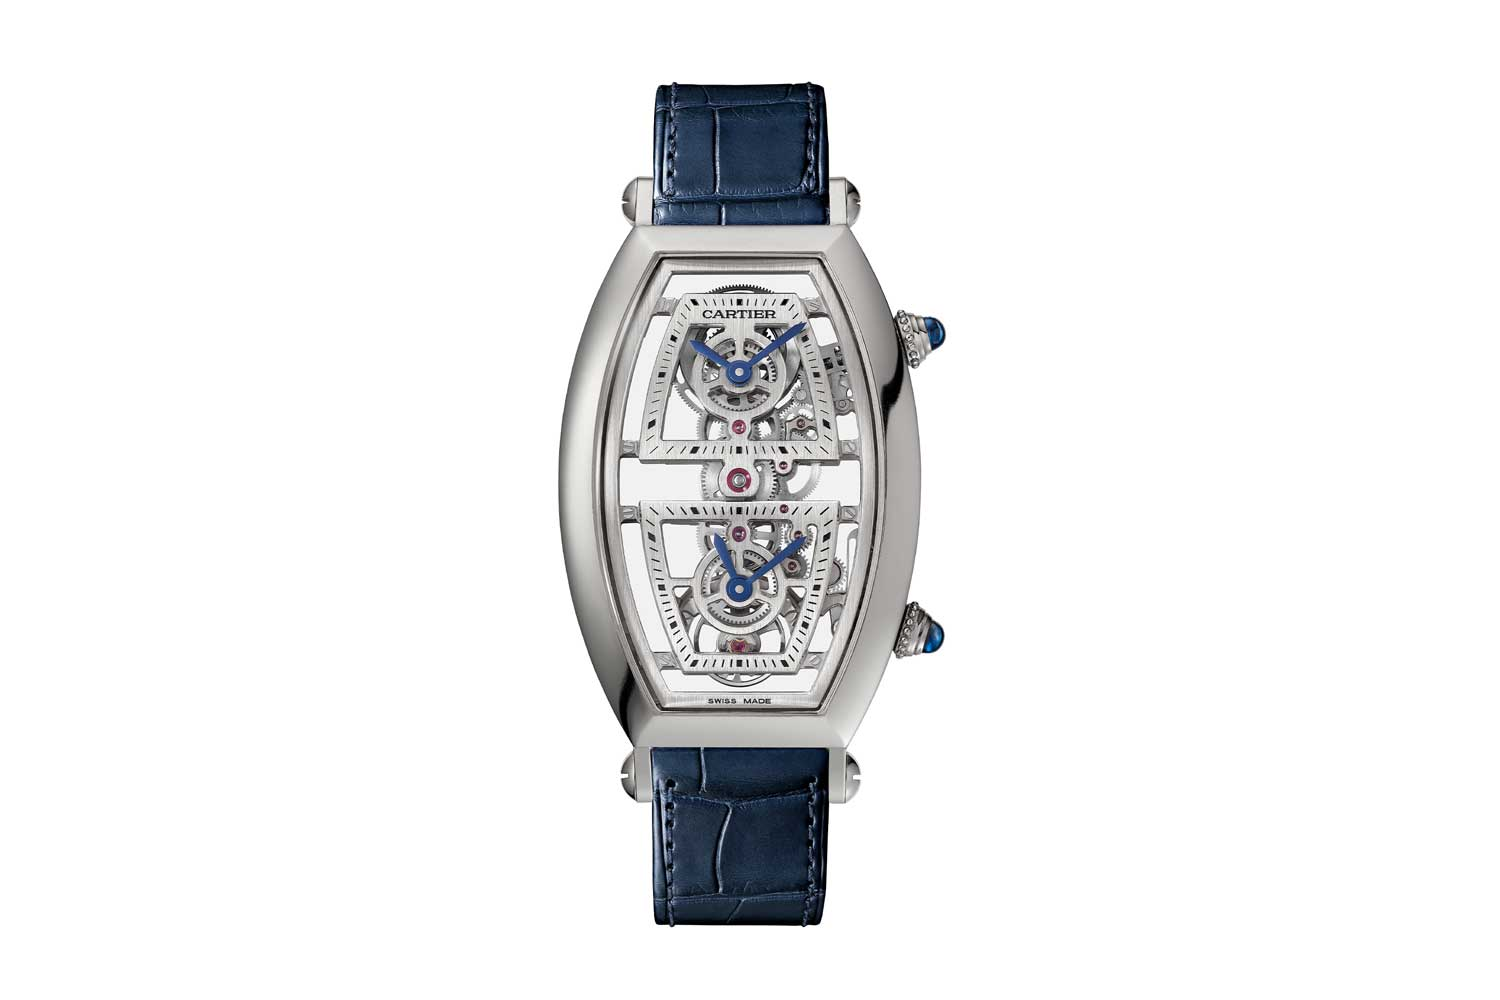 Cartier Prive Skeleton Dual Time Zone Tonneau Watch lanched at SIHH 2019; features an all-new movement, which is actually an extended linear gear train with a single balance and a centre wheel that splits off into two additional trains for each indication: this watch is different in that the crown at the bottom advances the lower hour hand only and while the CPCP watches' crowns were totally independent, here the minute hands are synchronised